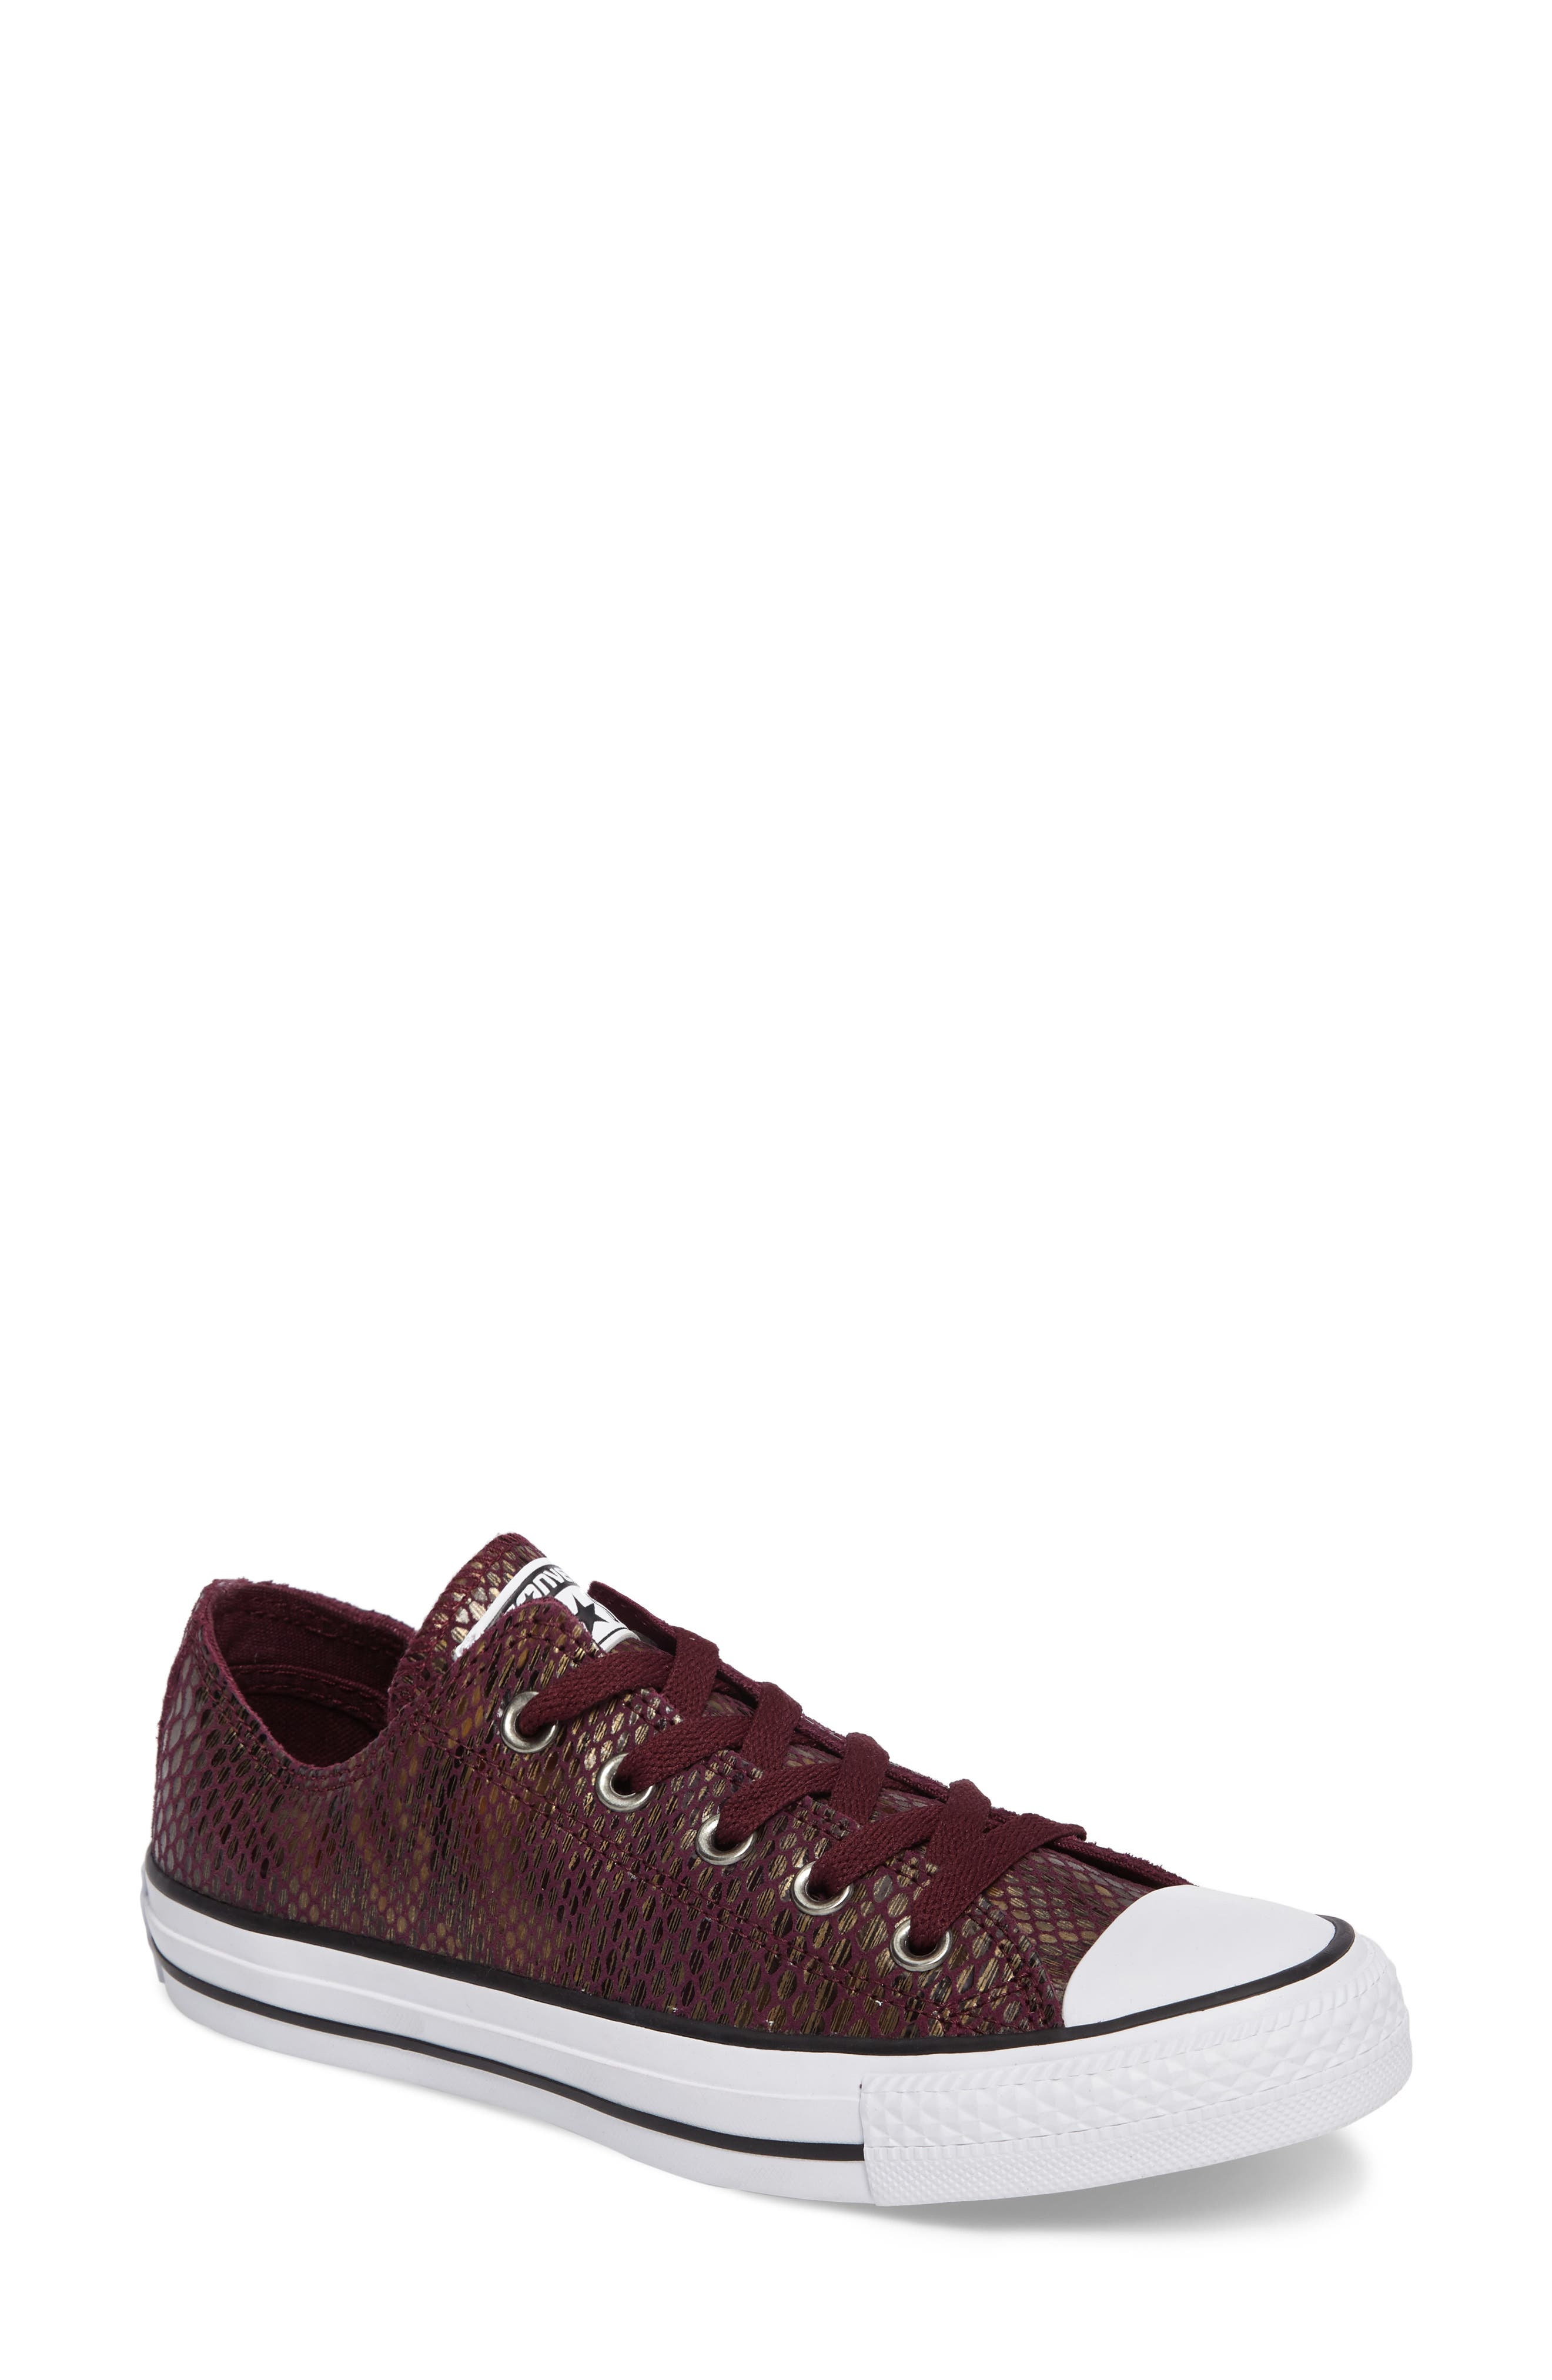 Chuck Taylor<sup>®</sup> All Star<sup>®</sup> Ox Leather Sneaker,                             Main thumbnail 2, color,